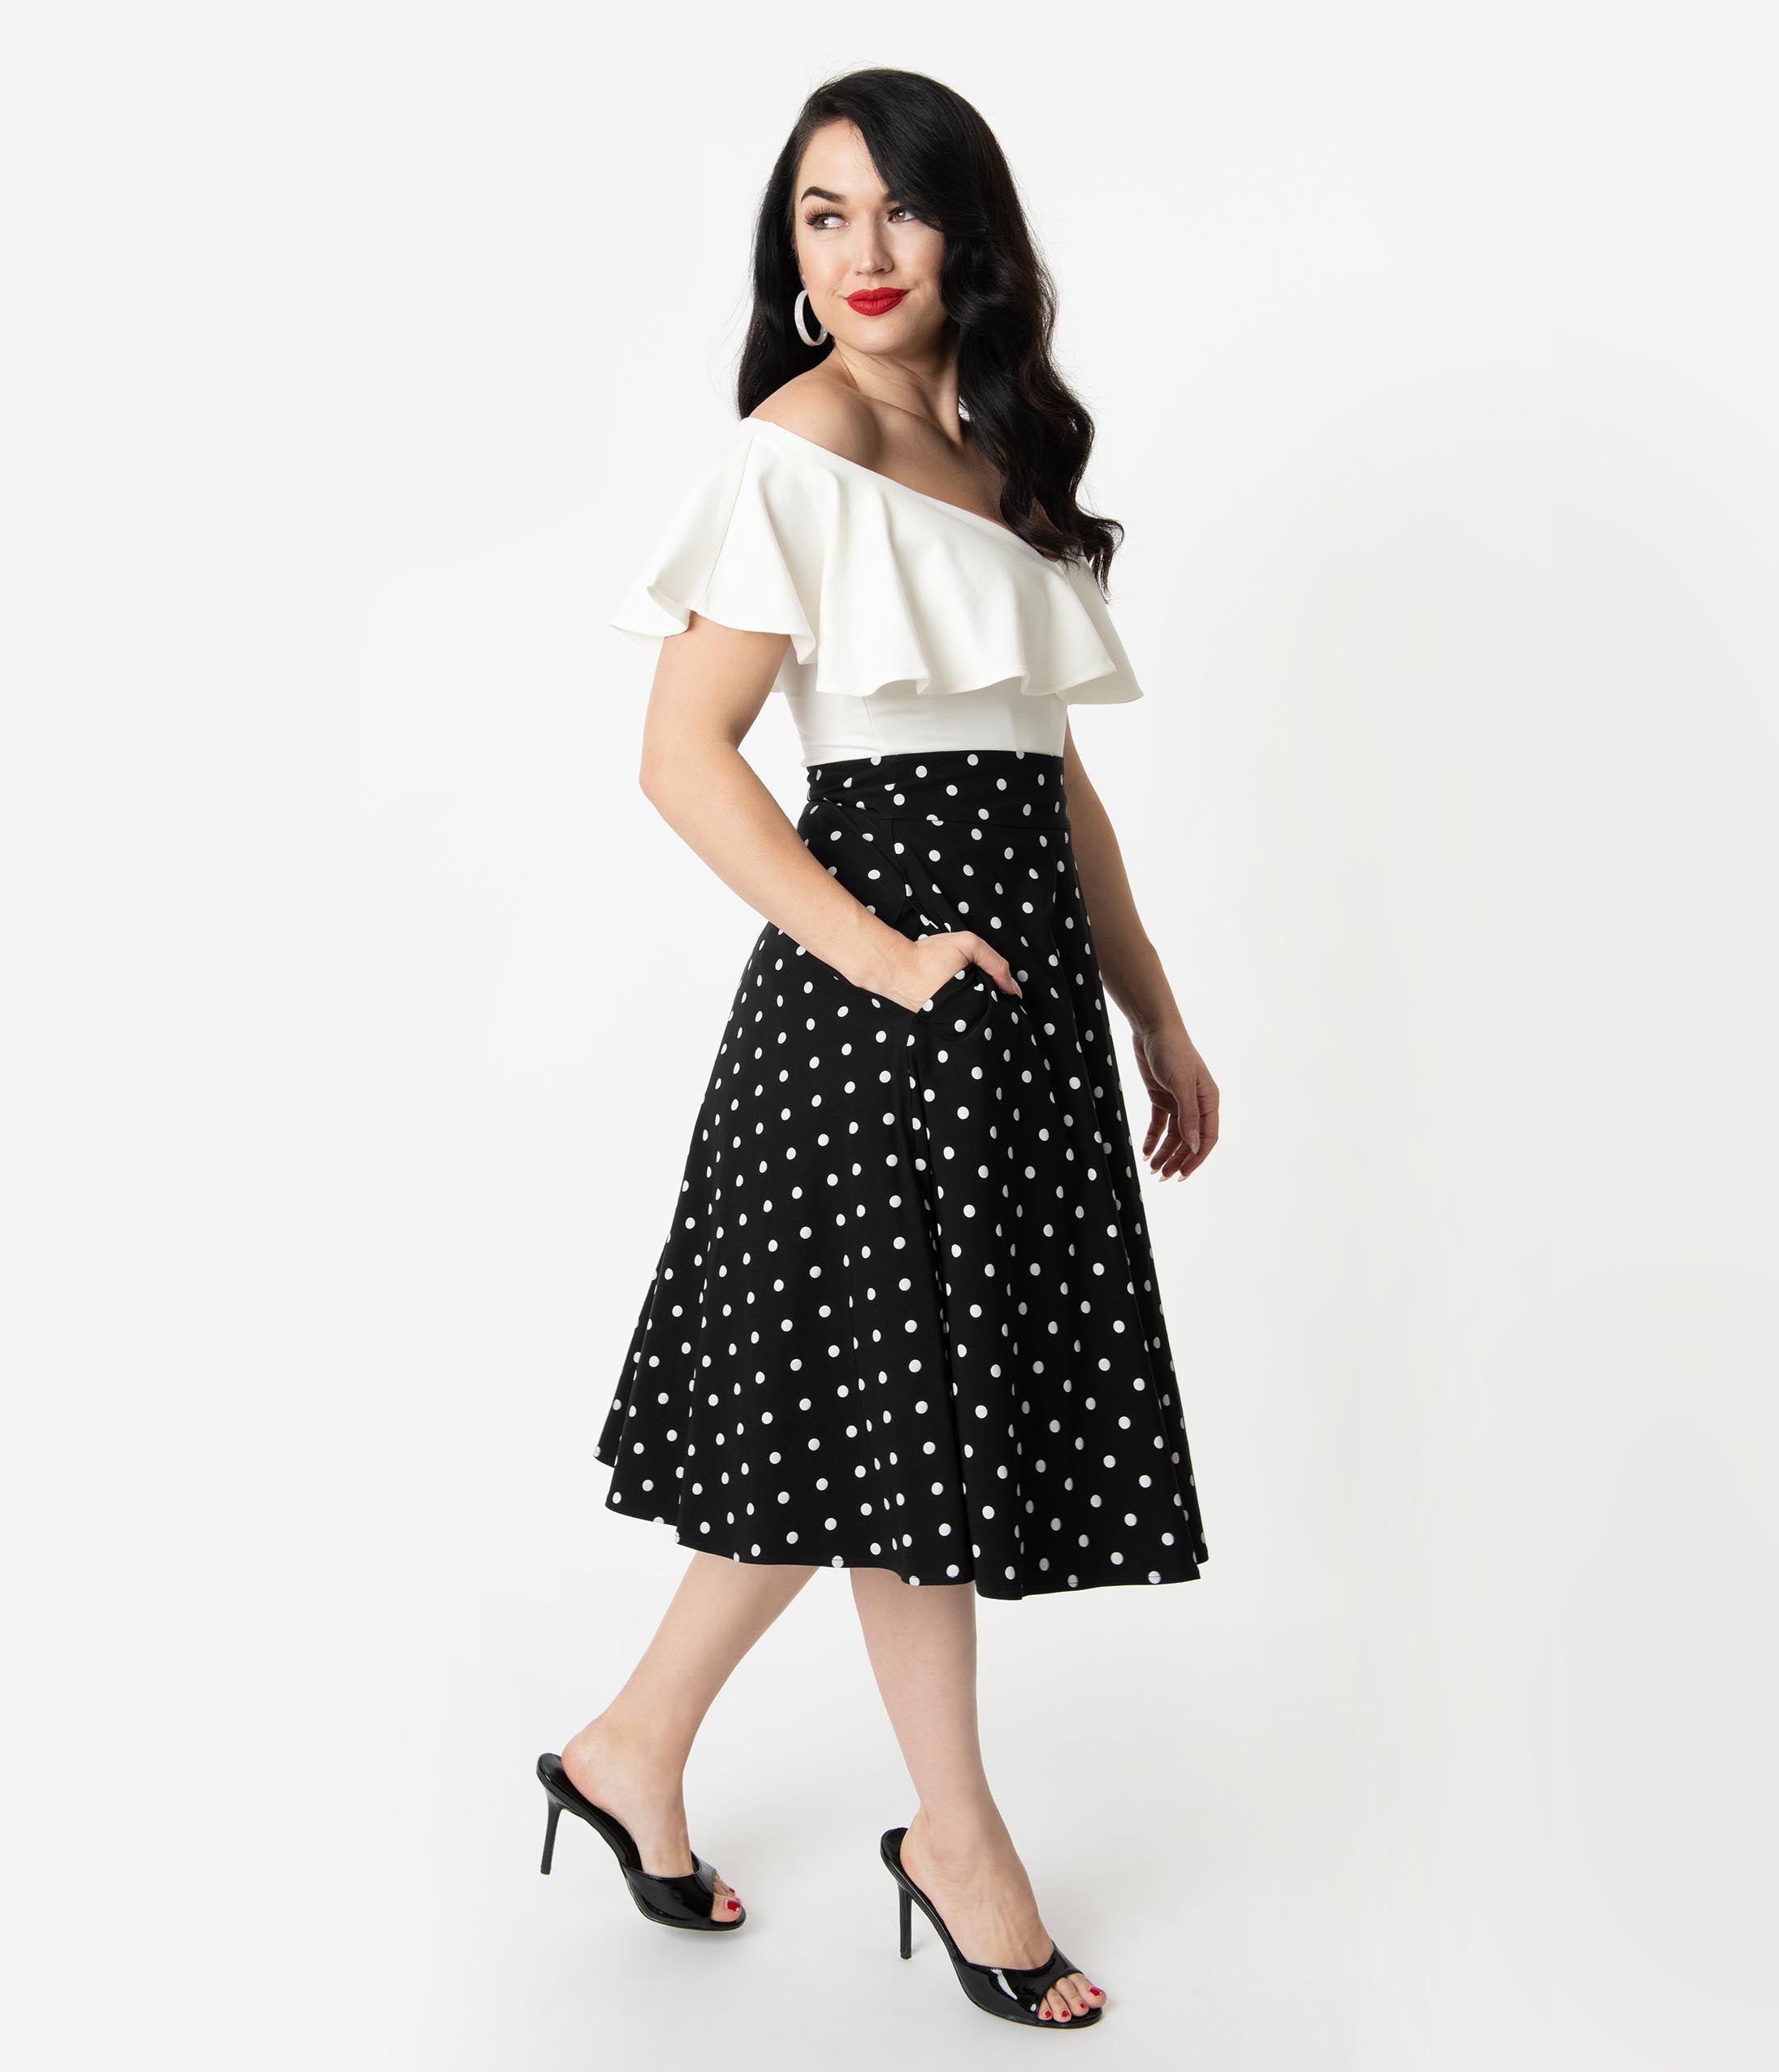 1950s Swing Skirt, Poodle Skirt, Pencil Skirts Unique Vintage Retro Style Black  White Polka Dot High Waist Vivien Swing Skirt $58.00 AT vintagedancer.com